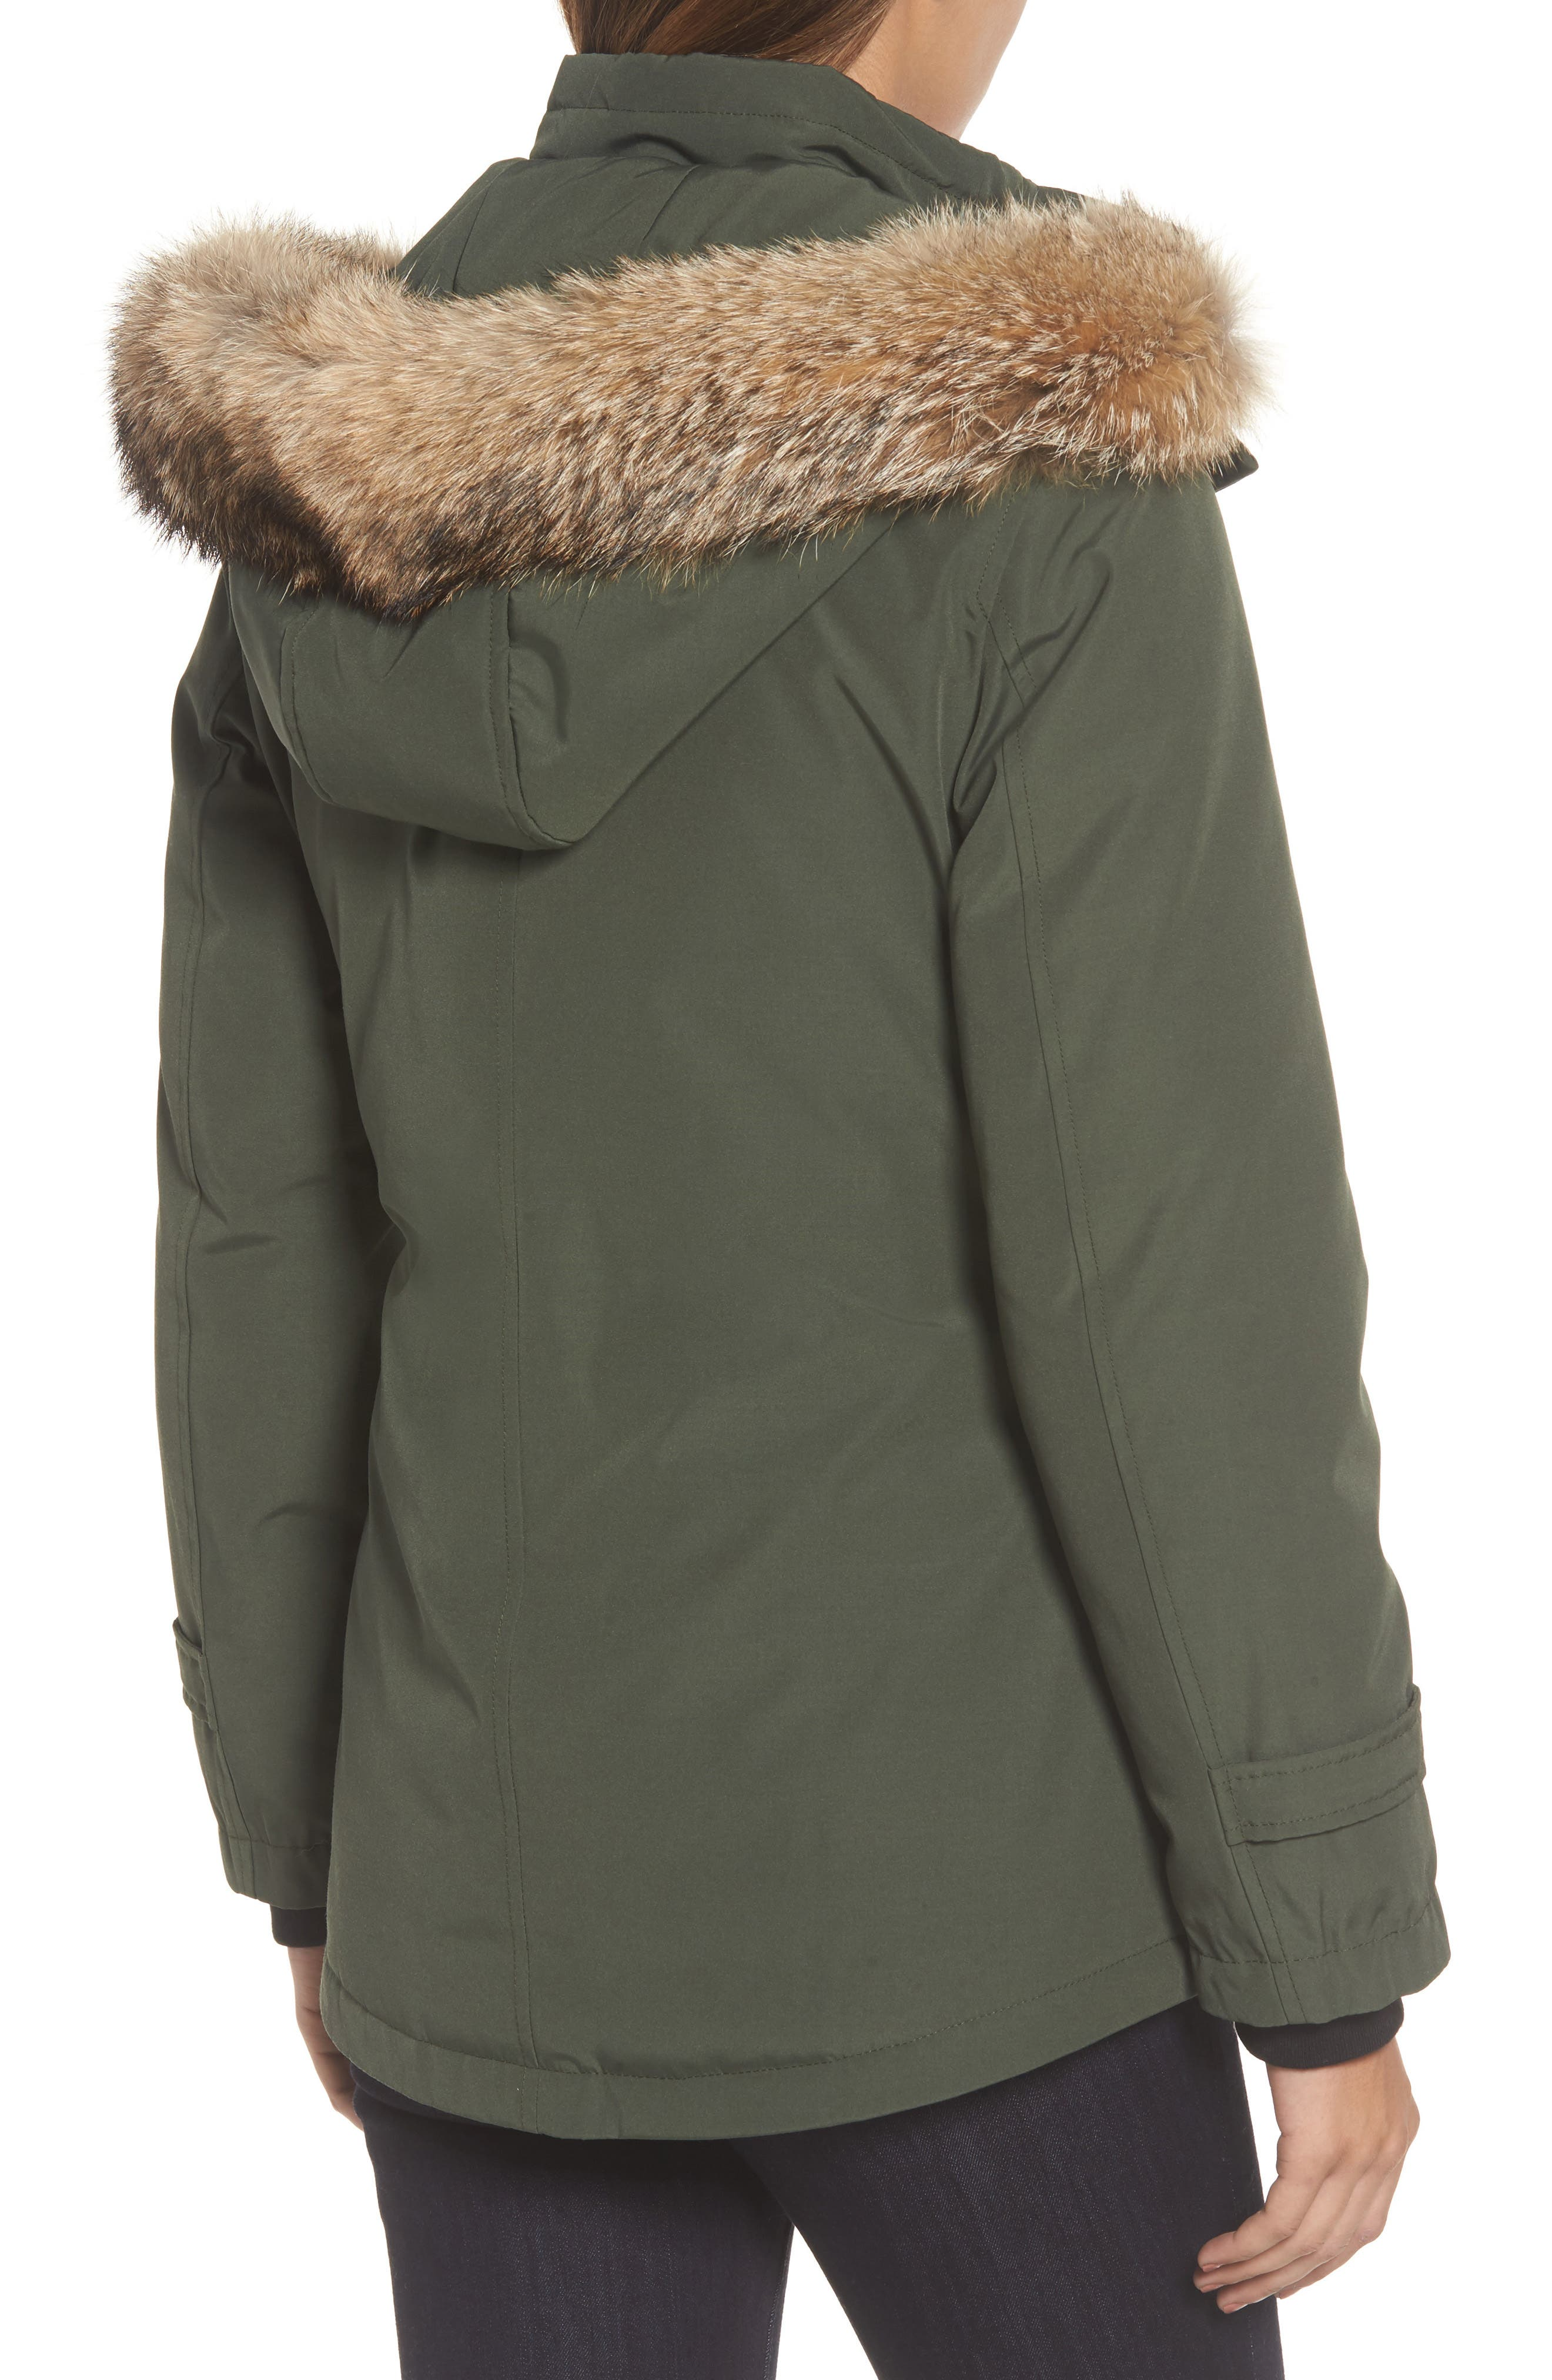 Bachelor Water Repellent Hooded Down Parka with Genuine Coyote Fur Trim,                             Alternate thumbnail 2, color,                             Olive